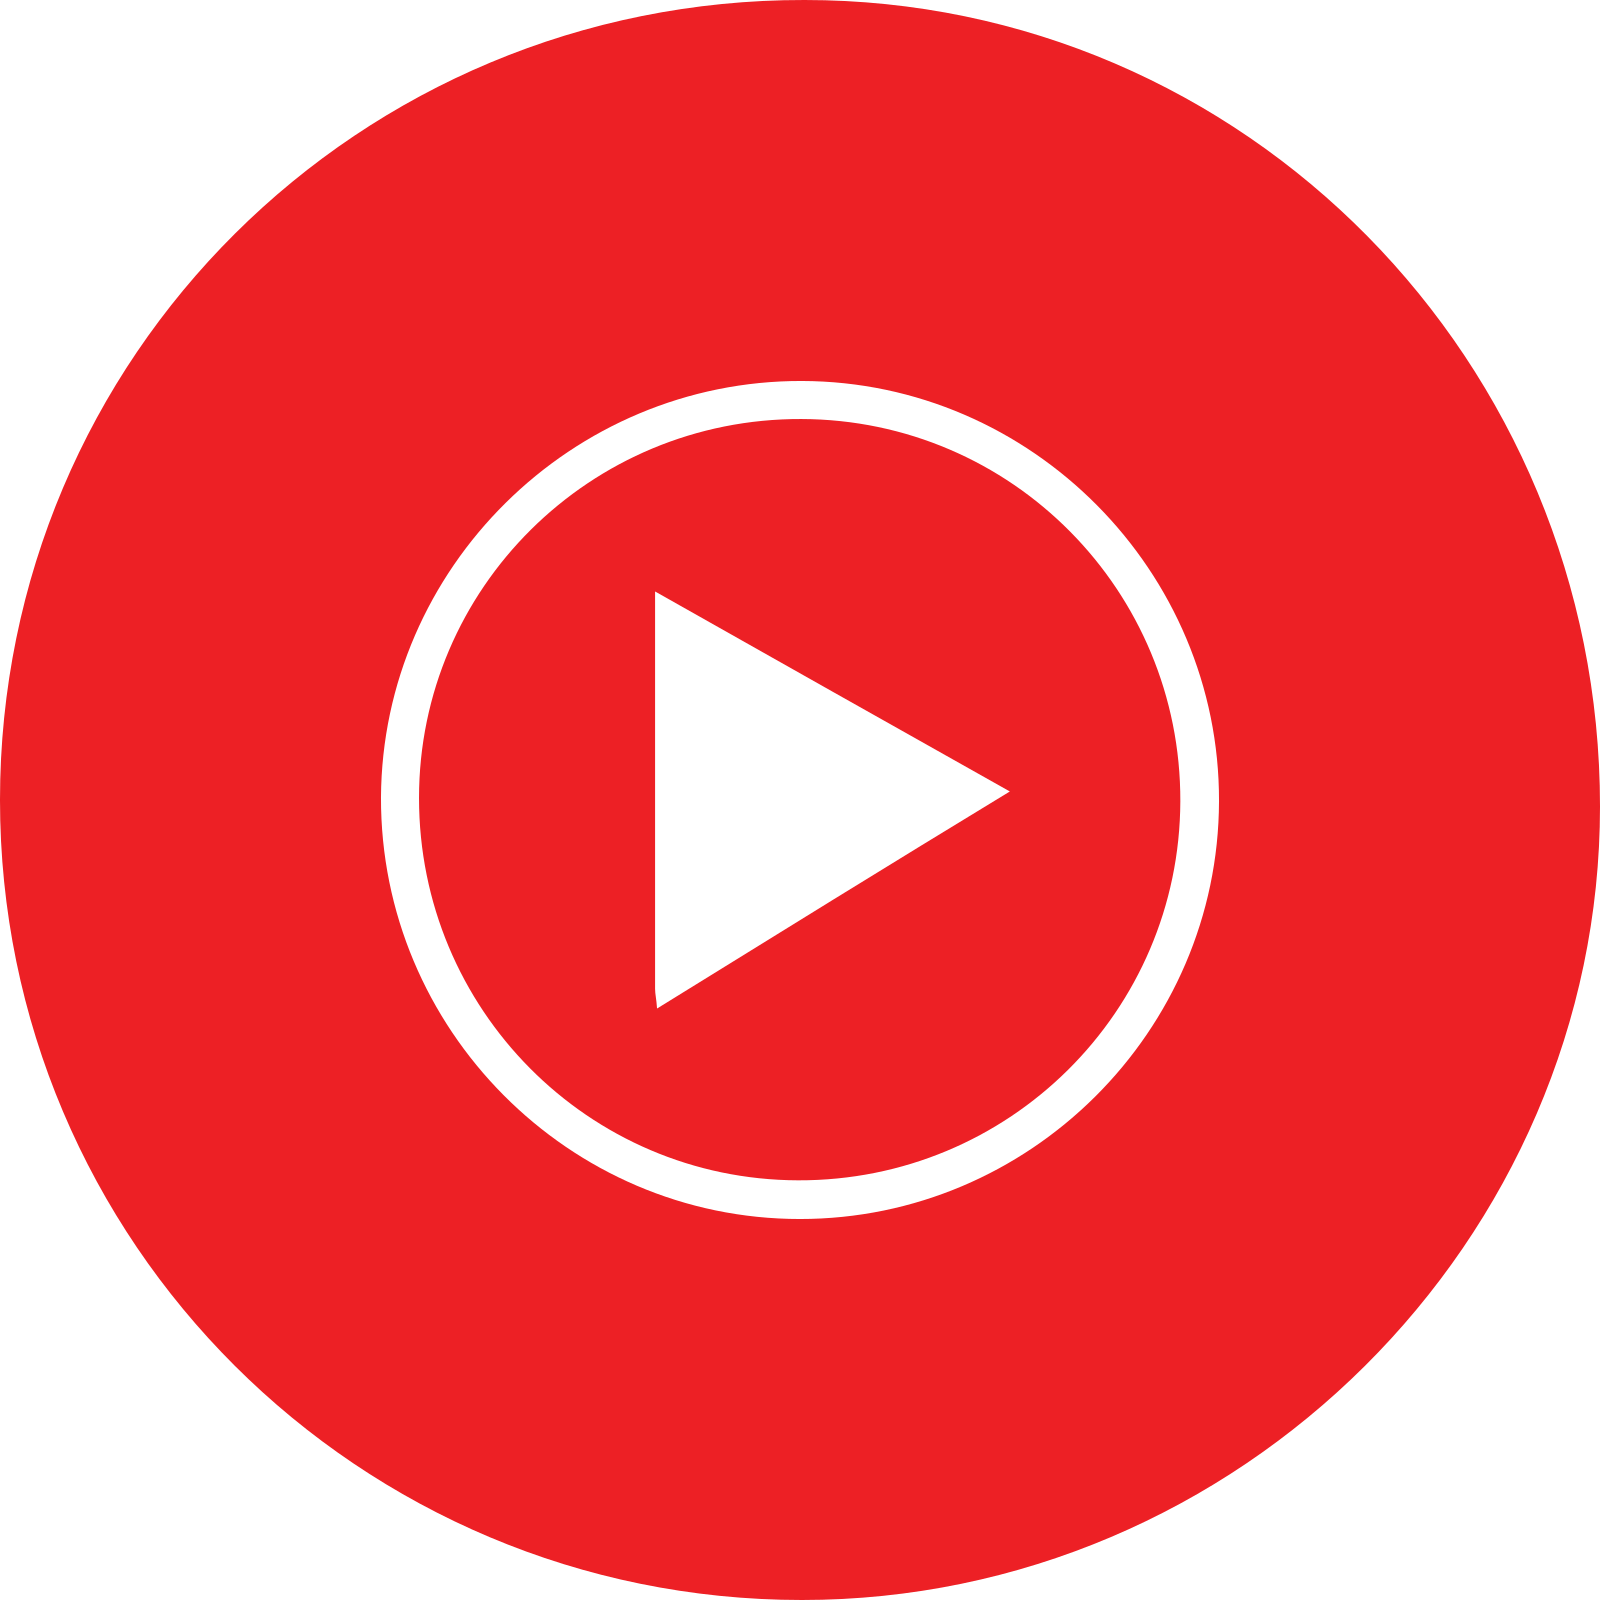 youtube music logo 7 - Youtube Music Logo